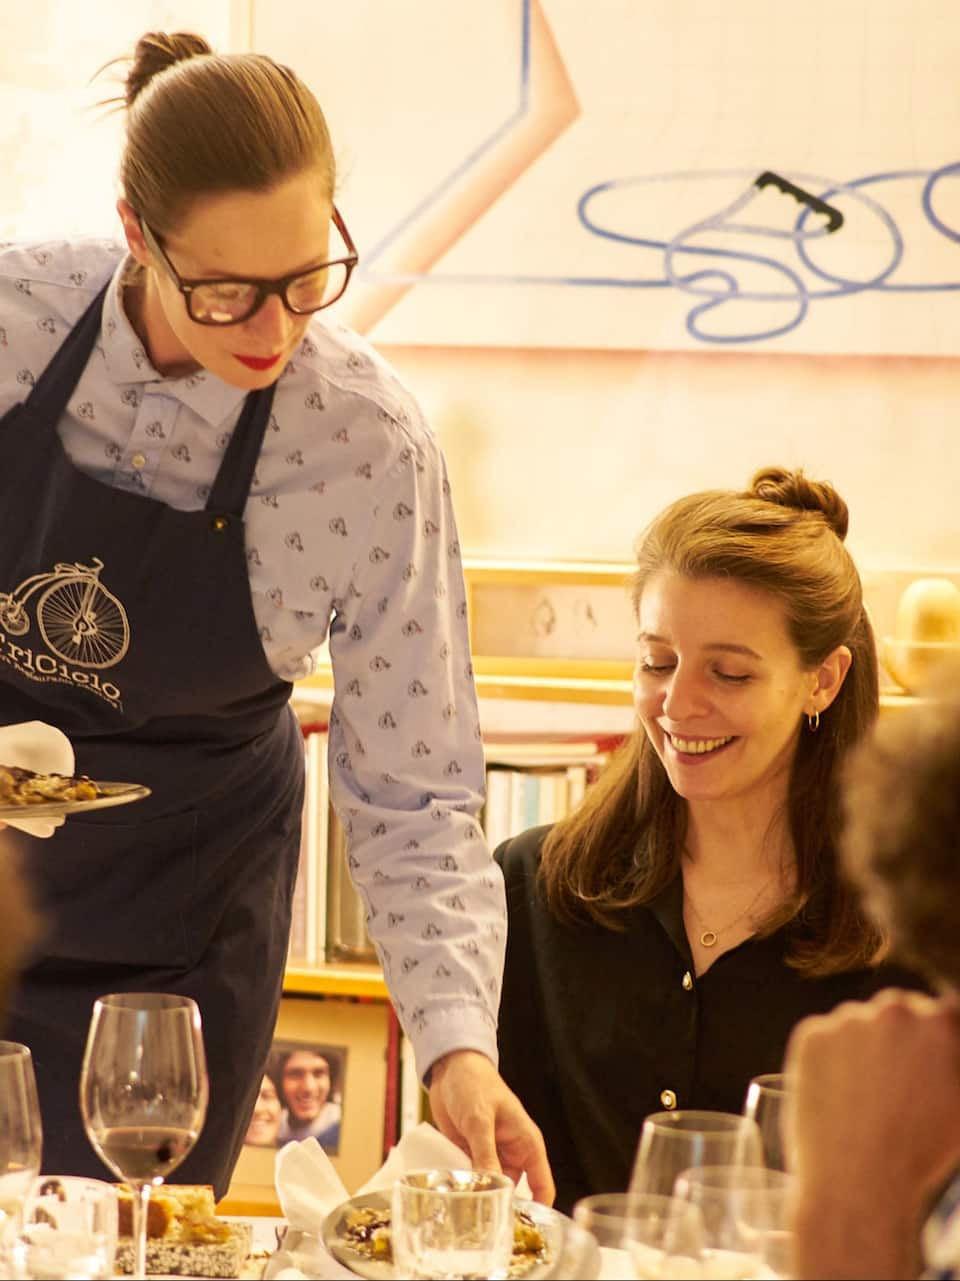 Woman being served a gourmet meal by chef